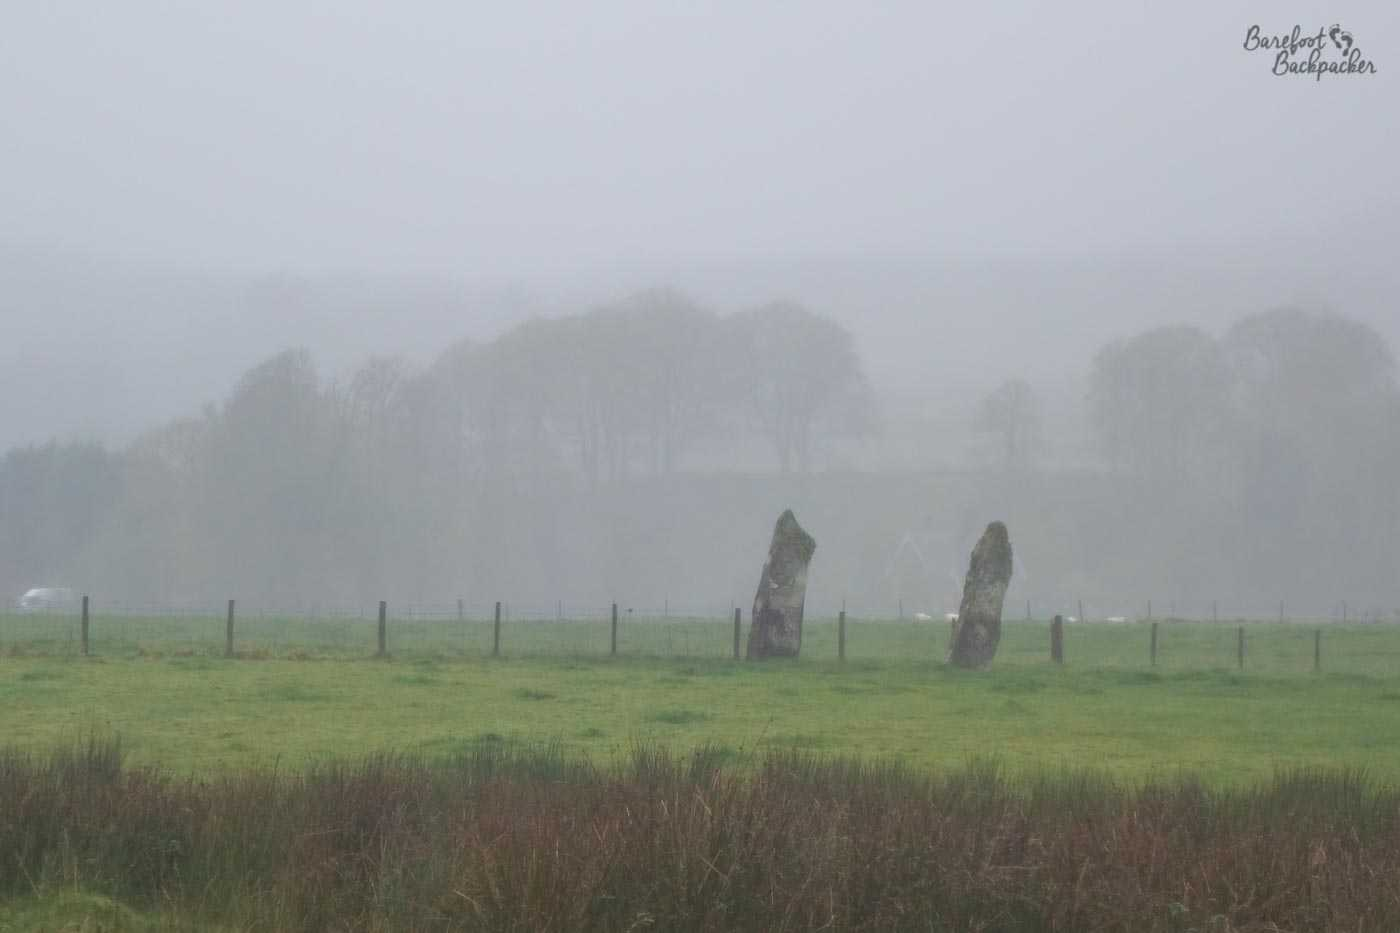 Two standing stones of pre-iron-age origin, standing in a field of sheep. It's very misty and damp.